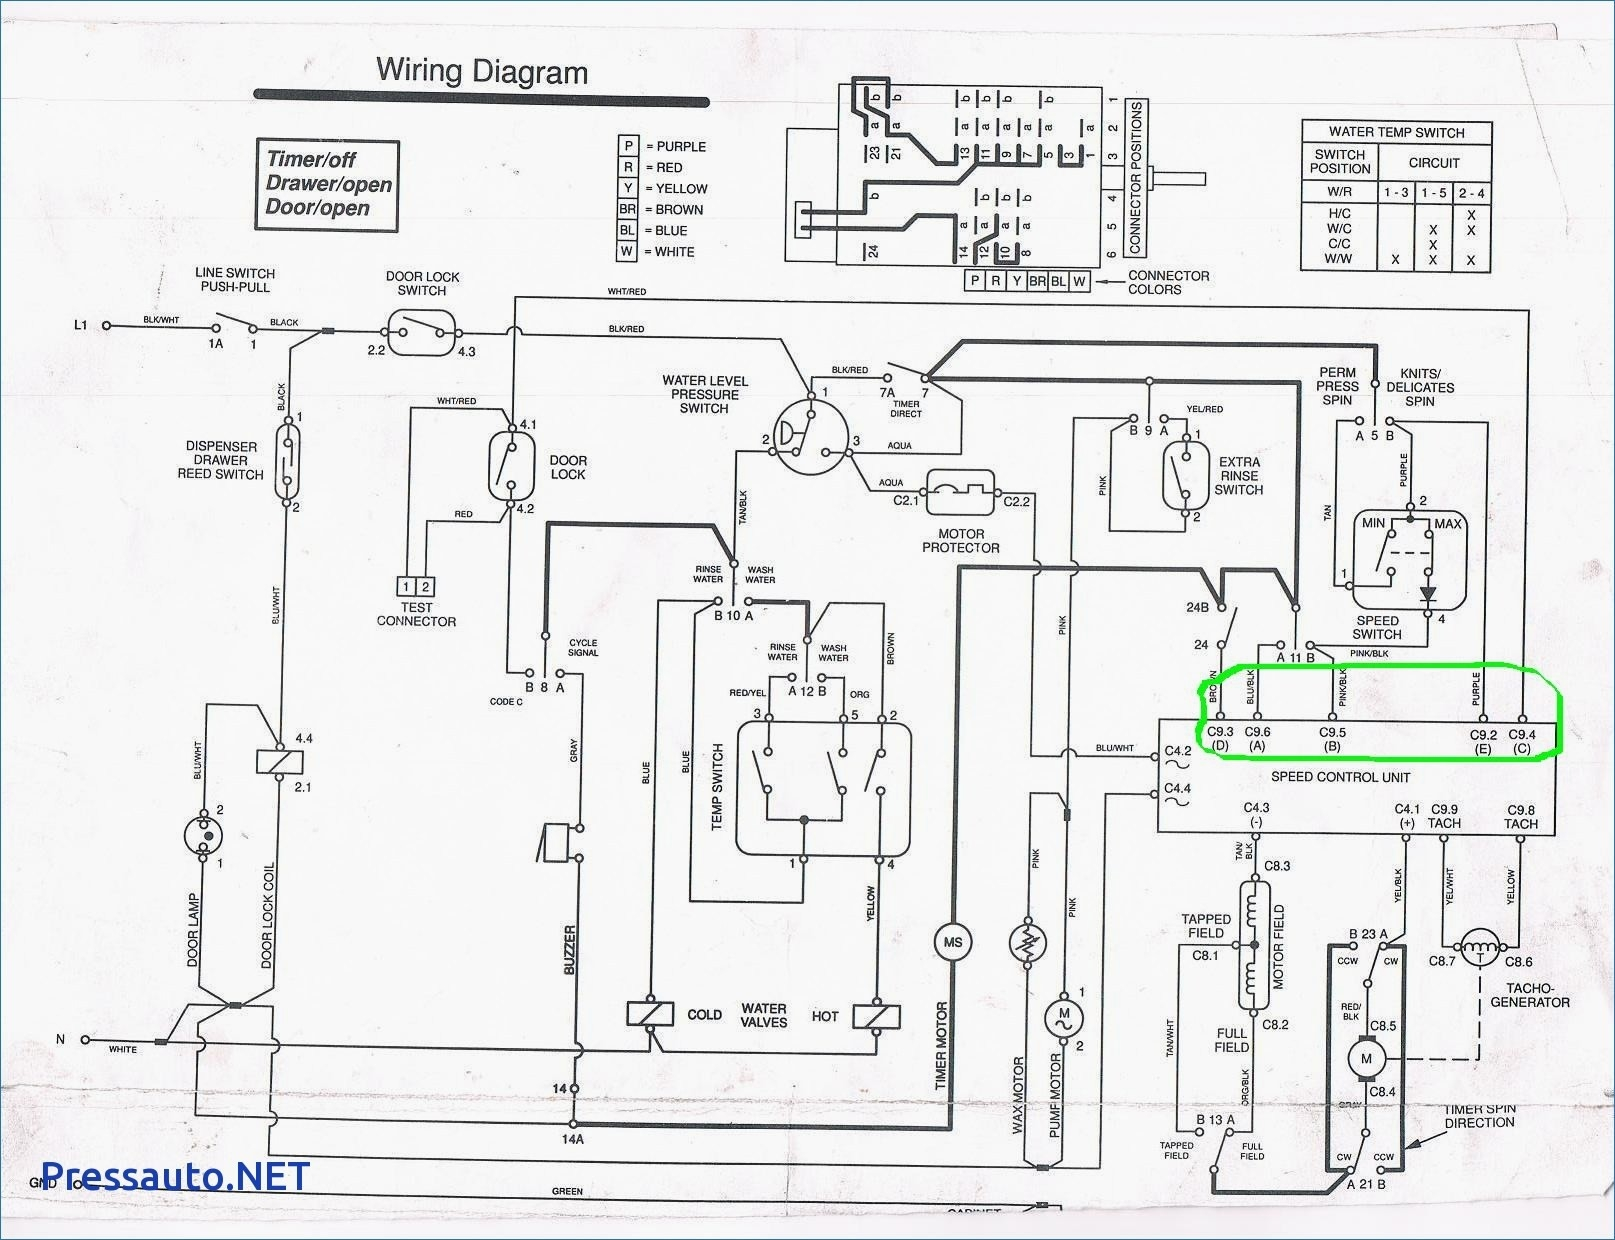 Whirlpool Microwave Schematic Diagram. . Wiring Diagram